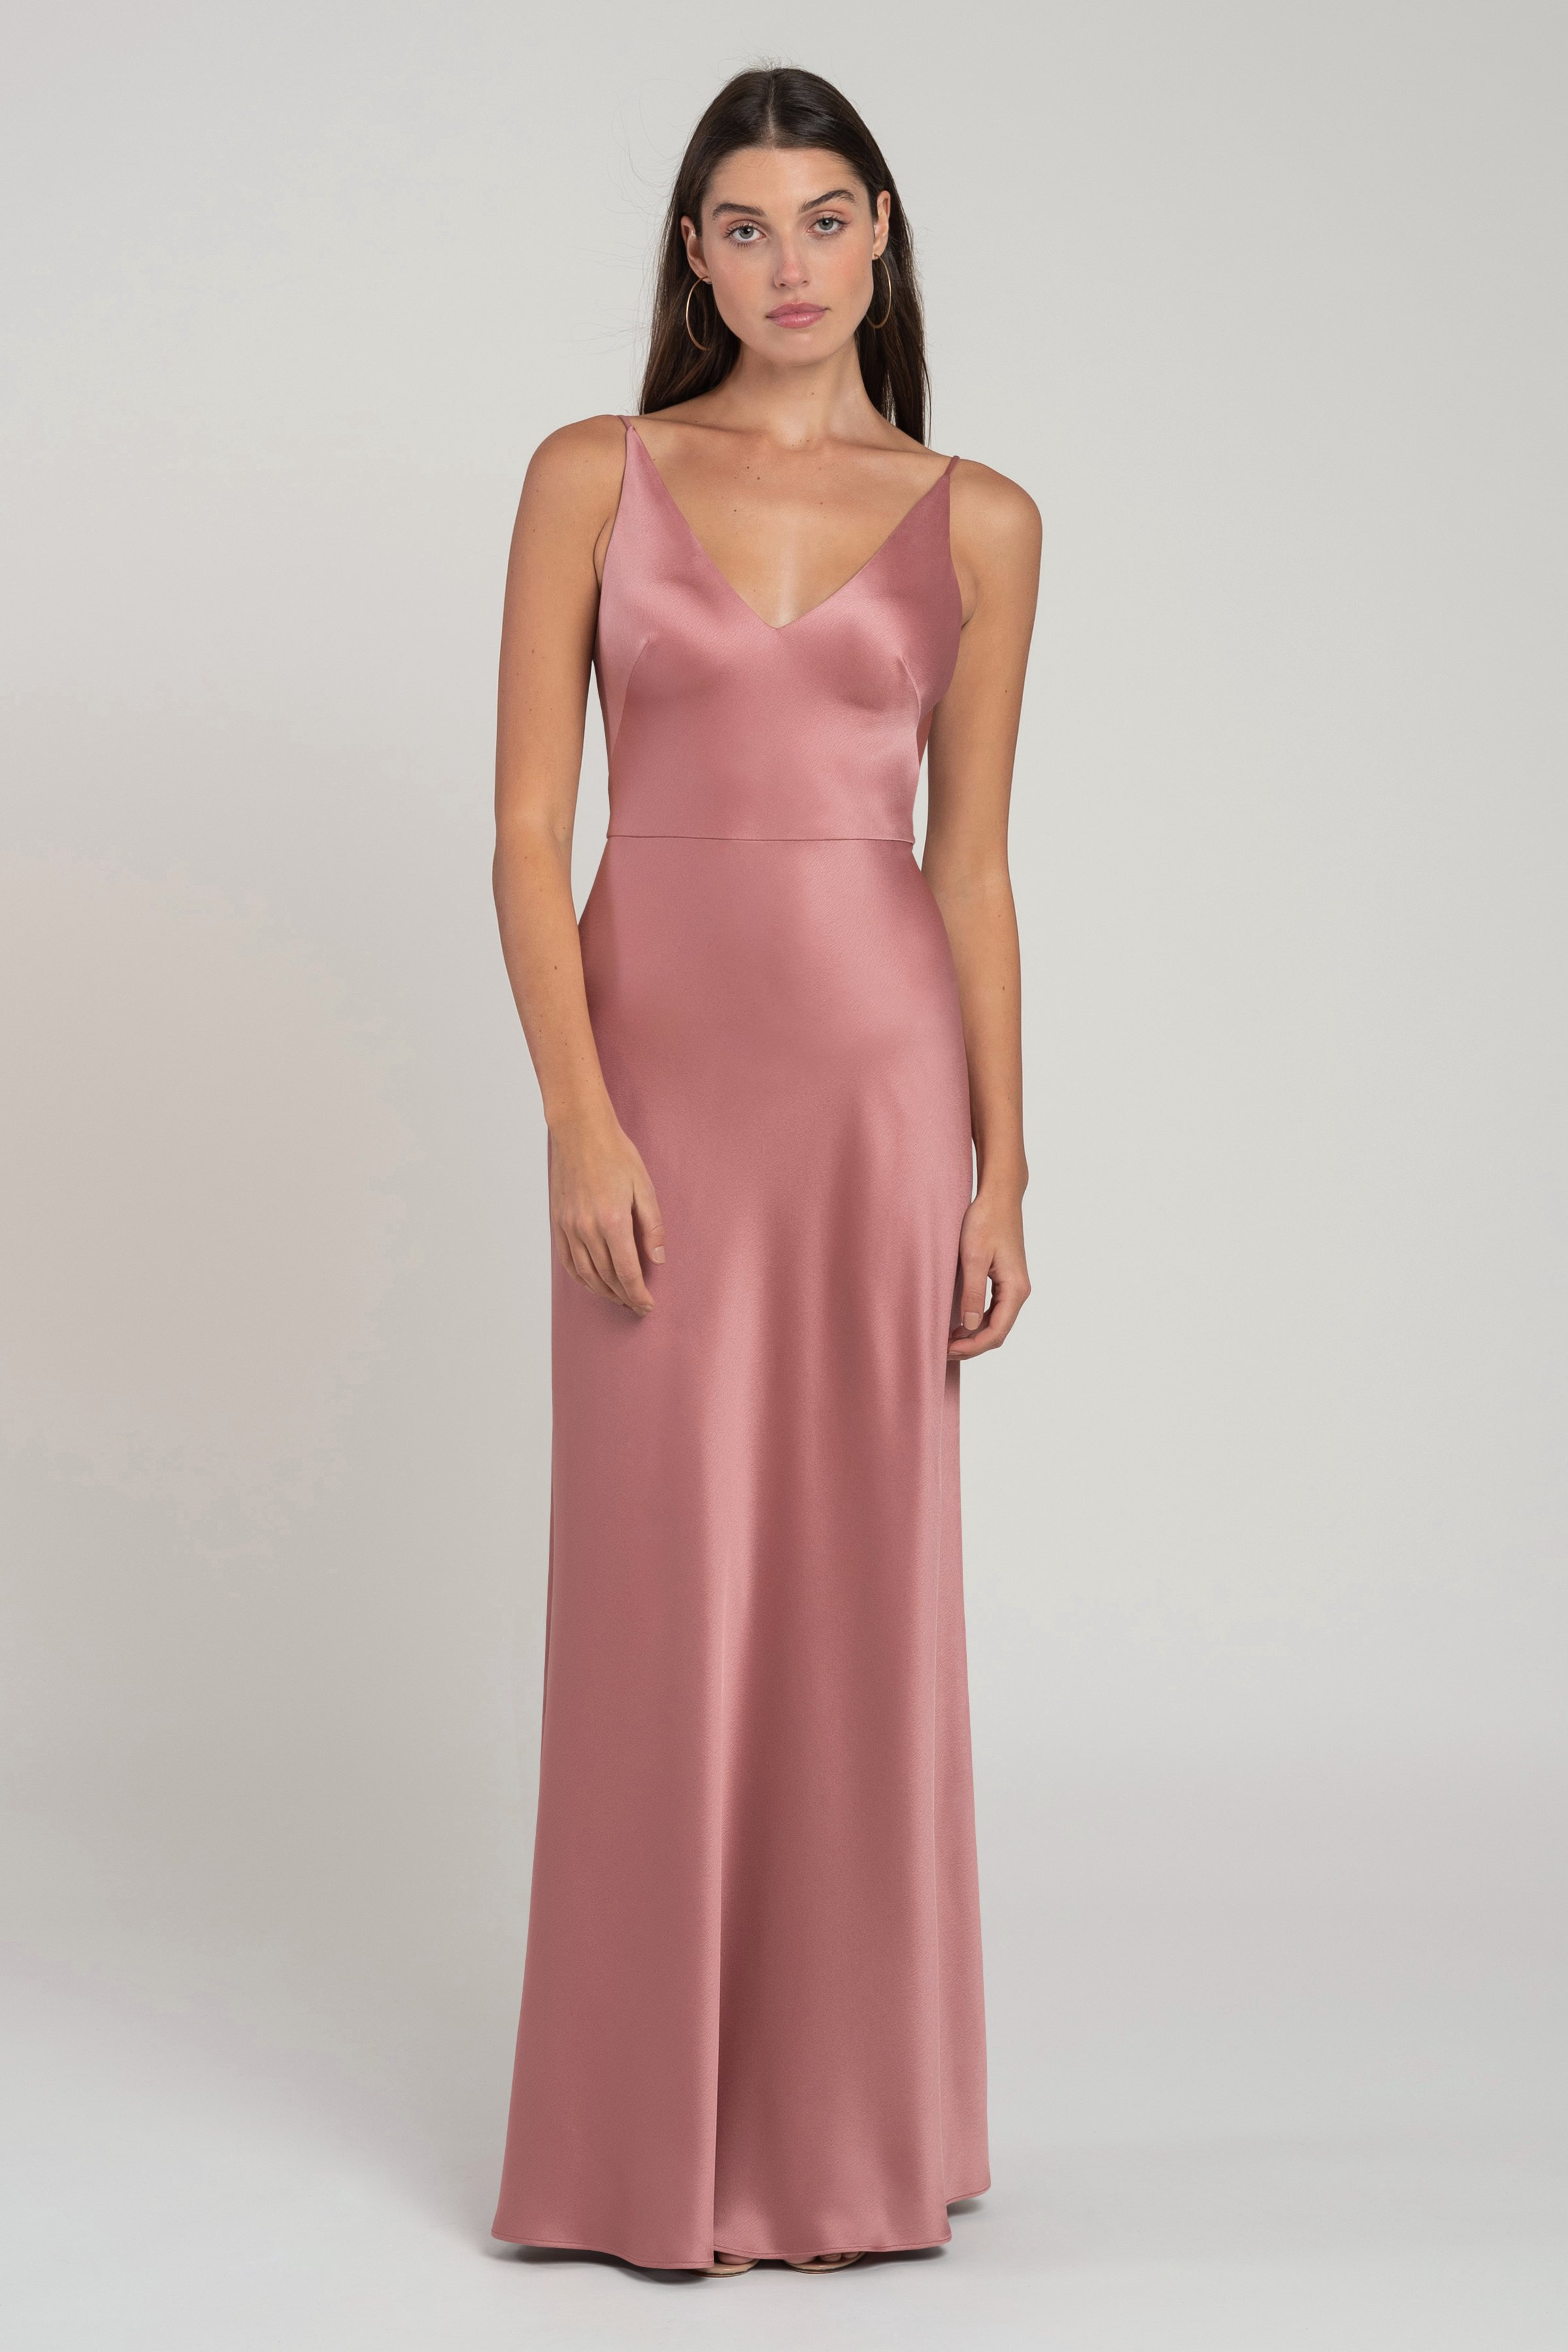 The Marla V-neck satin bridesmaid dress gives you all of the slinky appeal of a classic sip dress, in an easier to wear silhouette with a natural waist seam. The not-too-low V neckline and body skimming bias cut skirt make this a very flattering style.